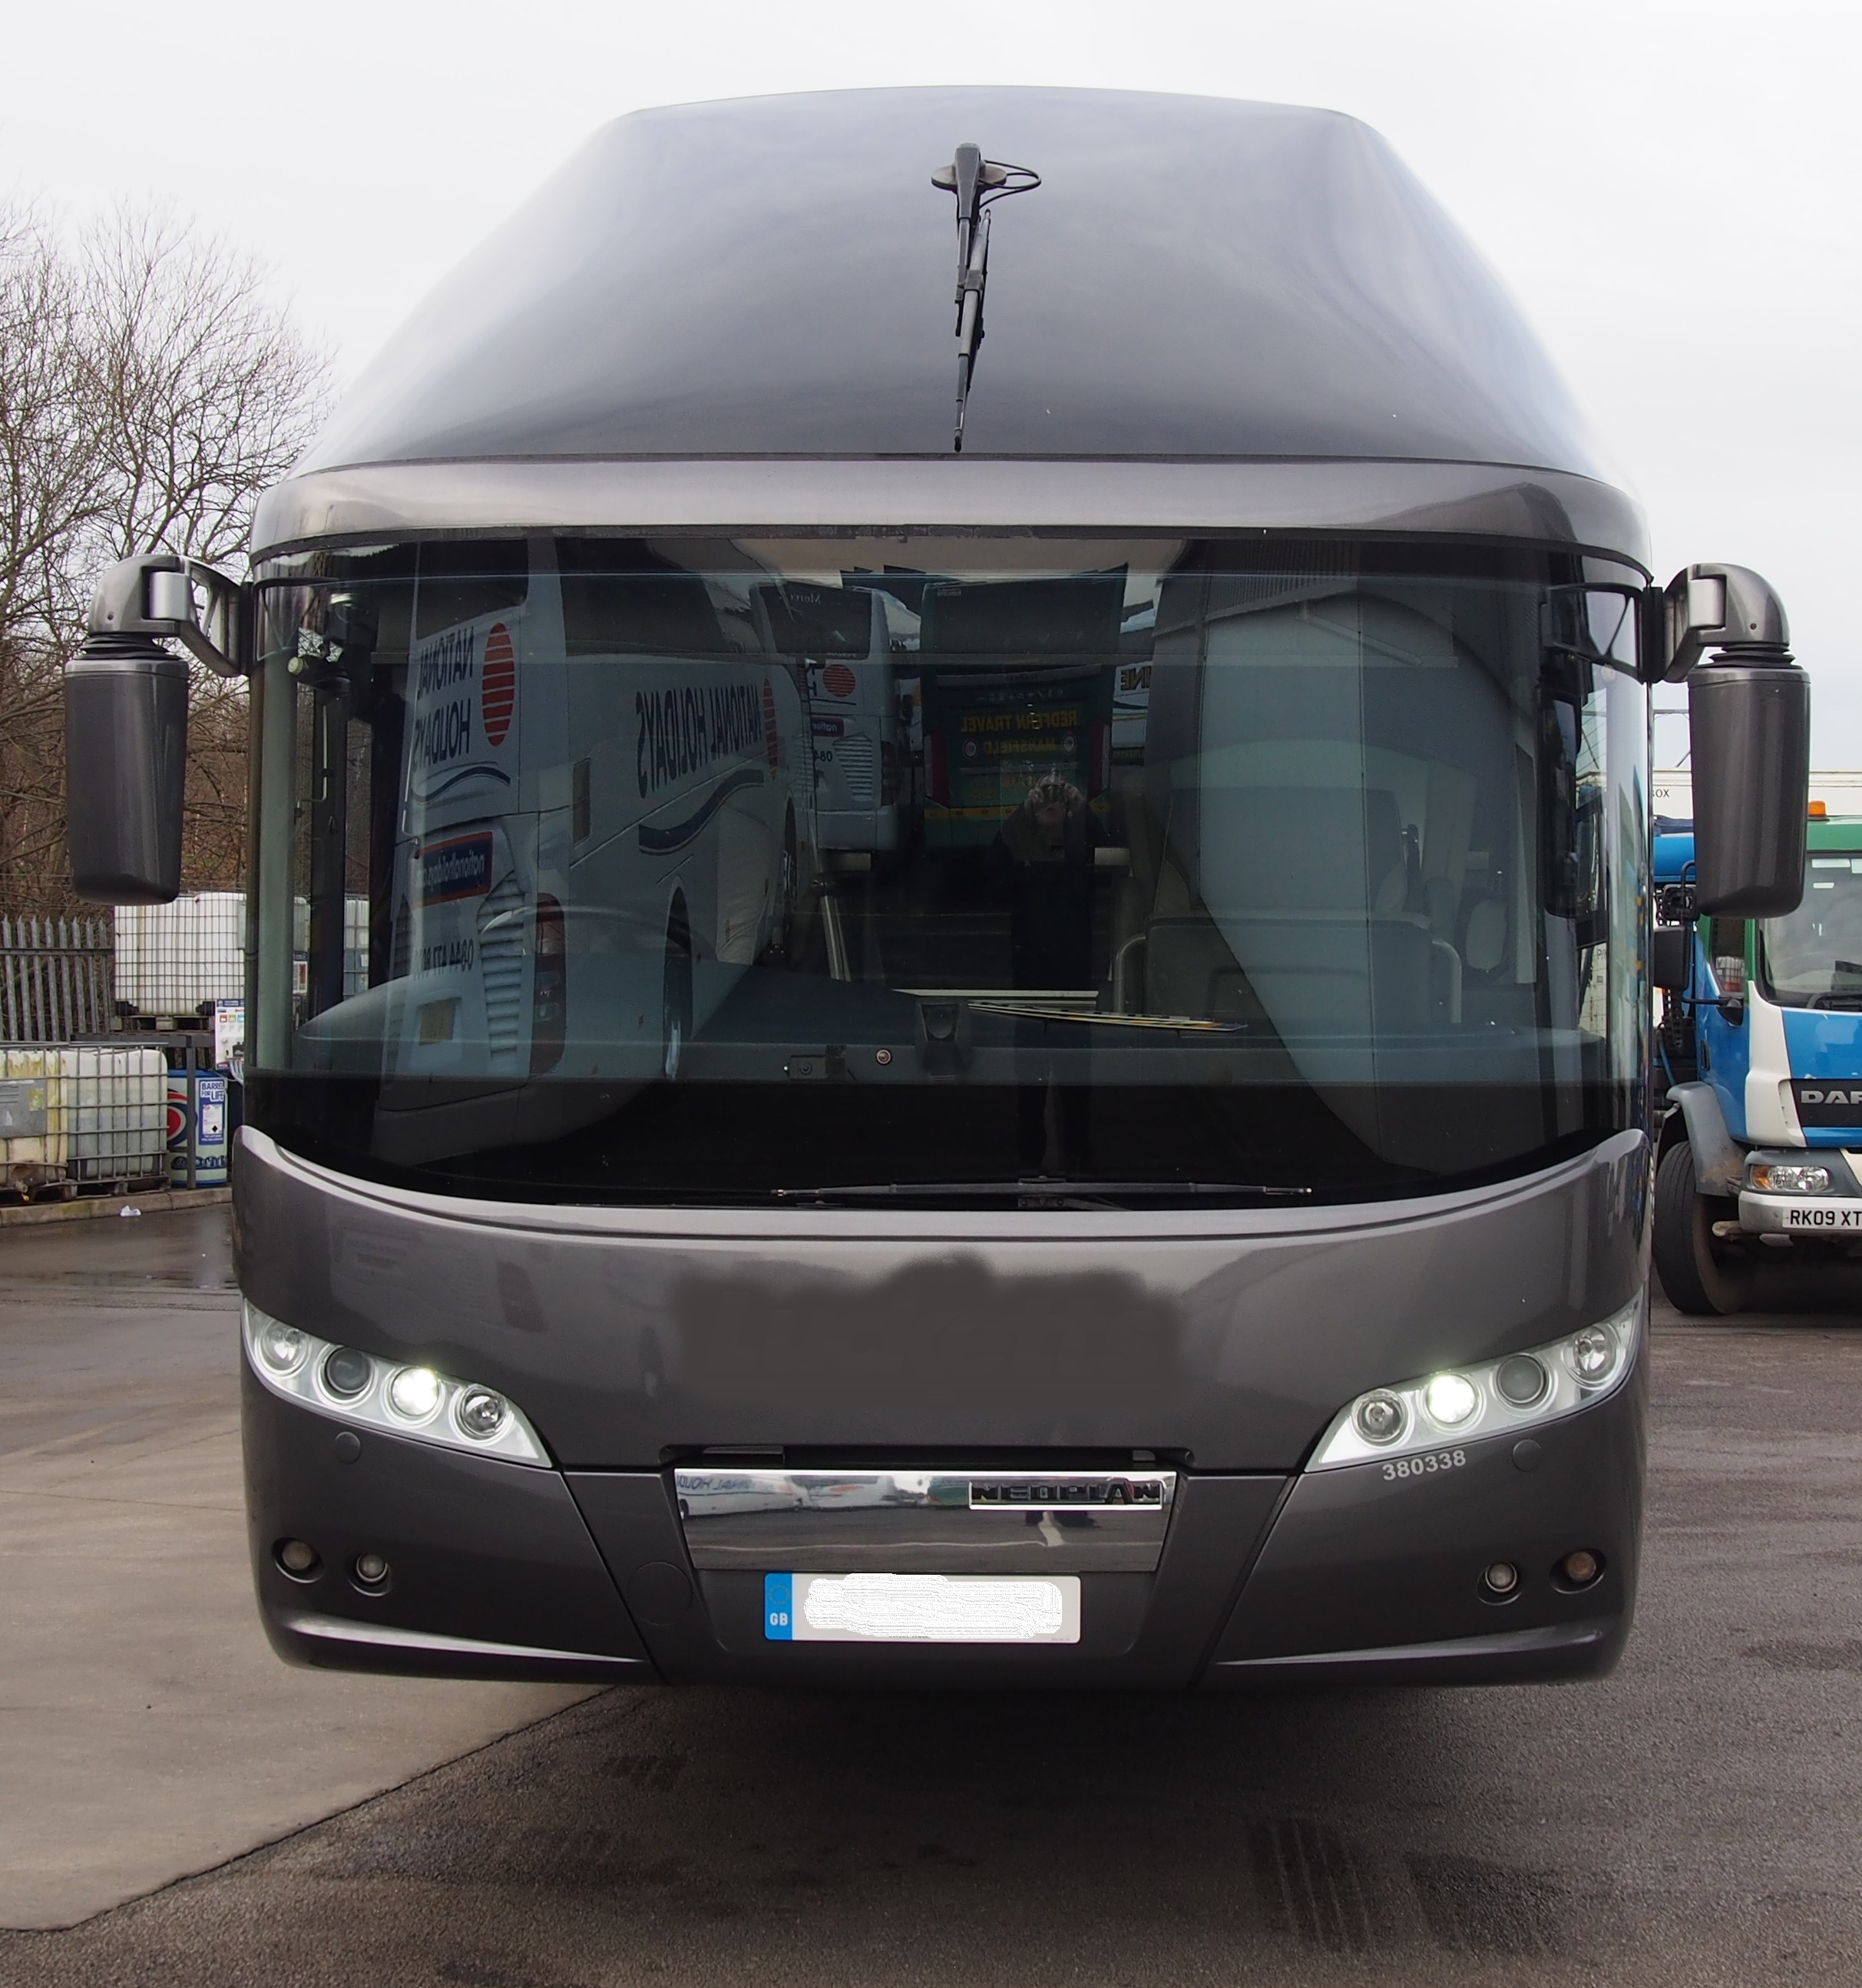 2013 MAN Neoplan Starliner � Full Team Coach Specification-image4